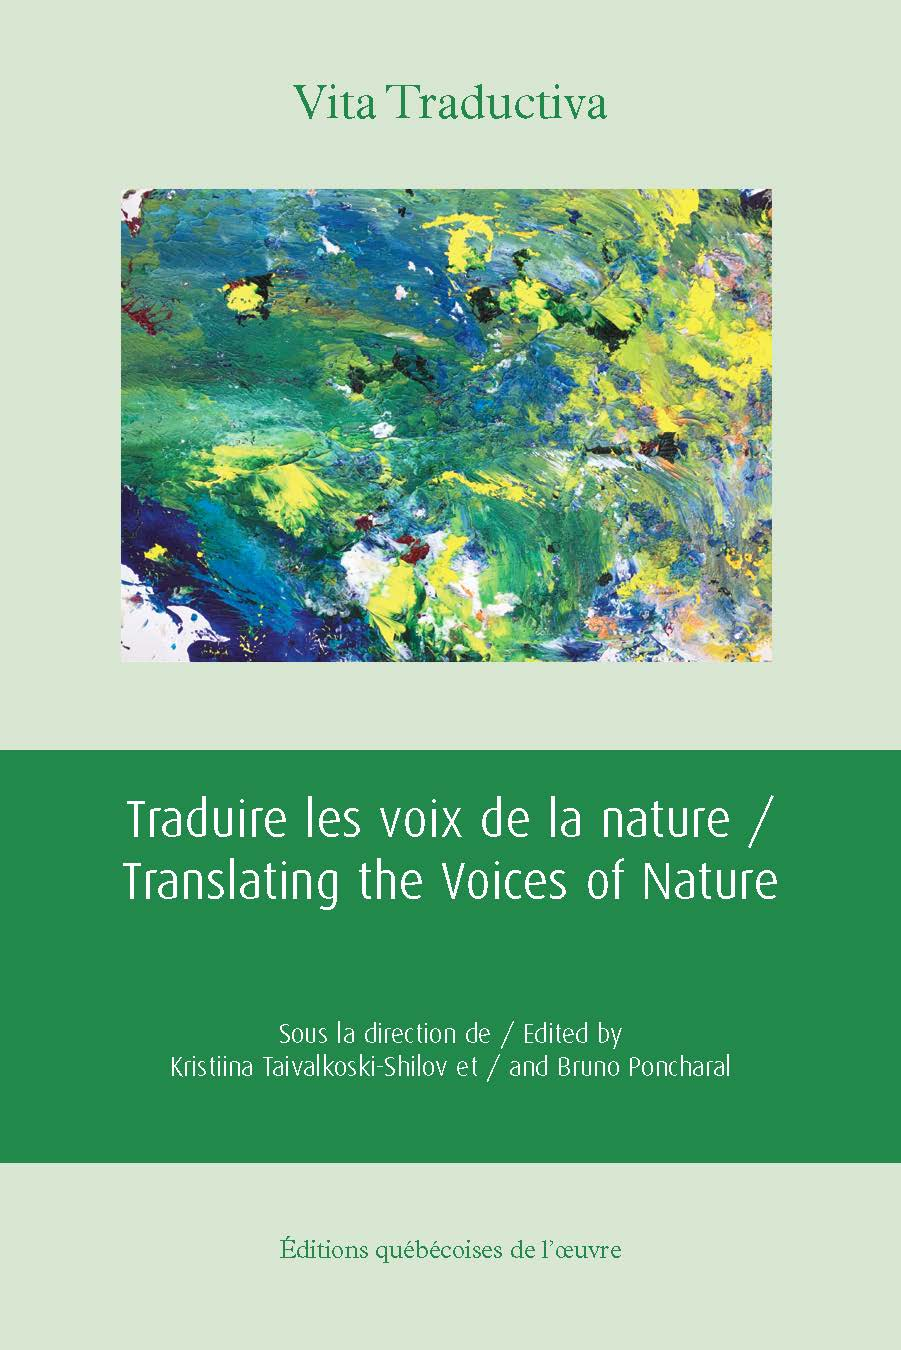 Agnes Whitfield: International Recognition for Vita Traductiva Publication Series